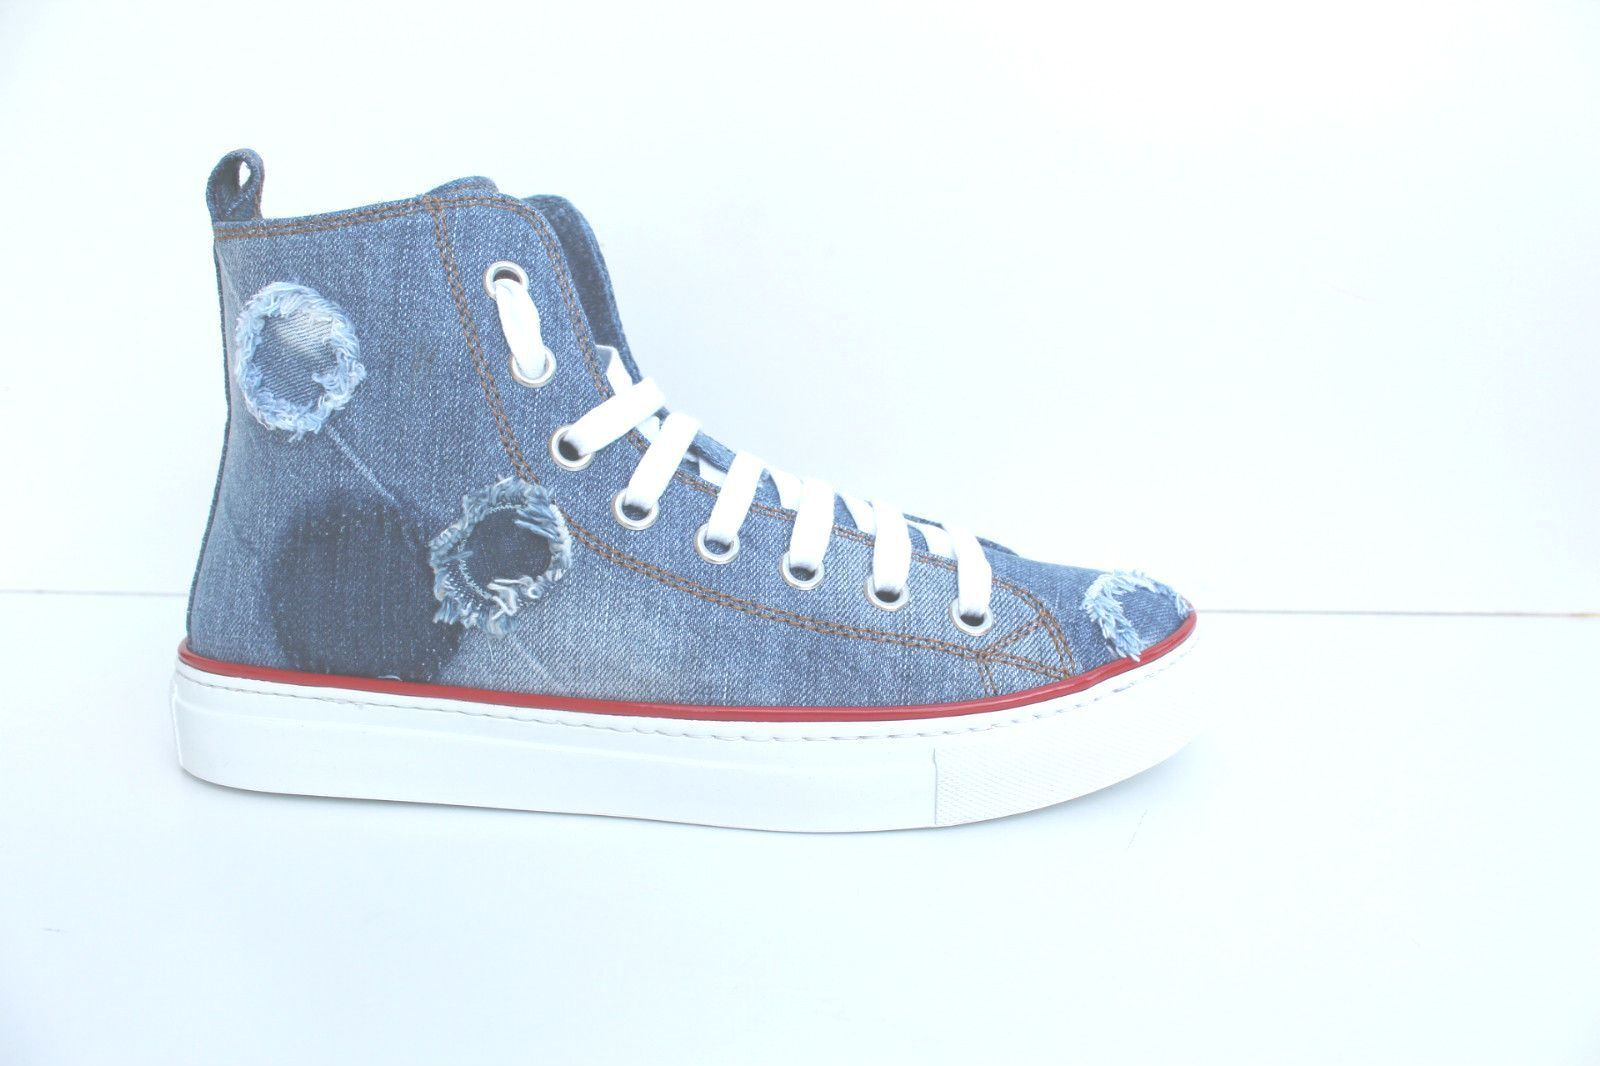 Sneaker alta Dsquared2 in uomo in Dsquared2 jeans (12) a0d3c2